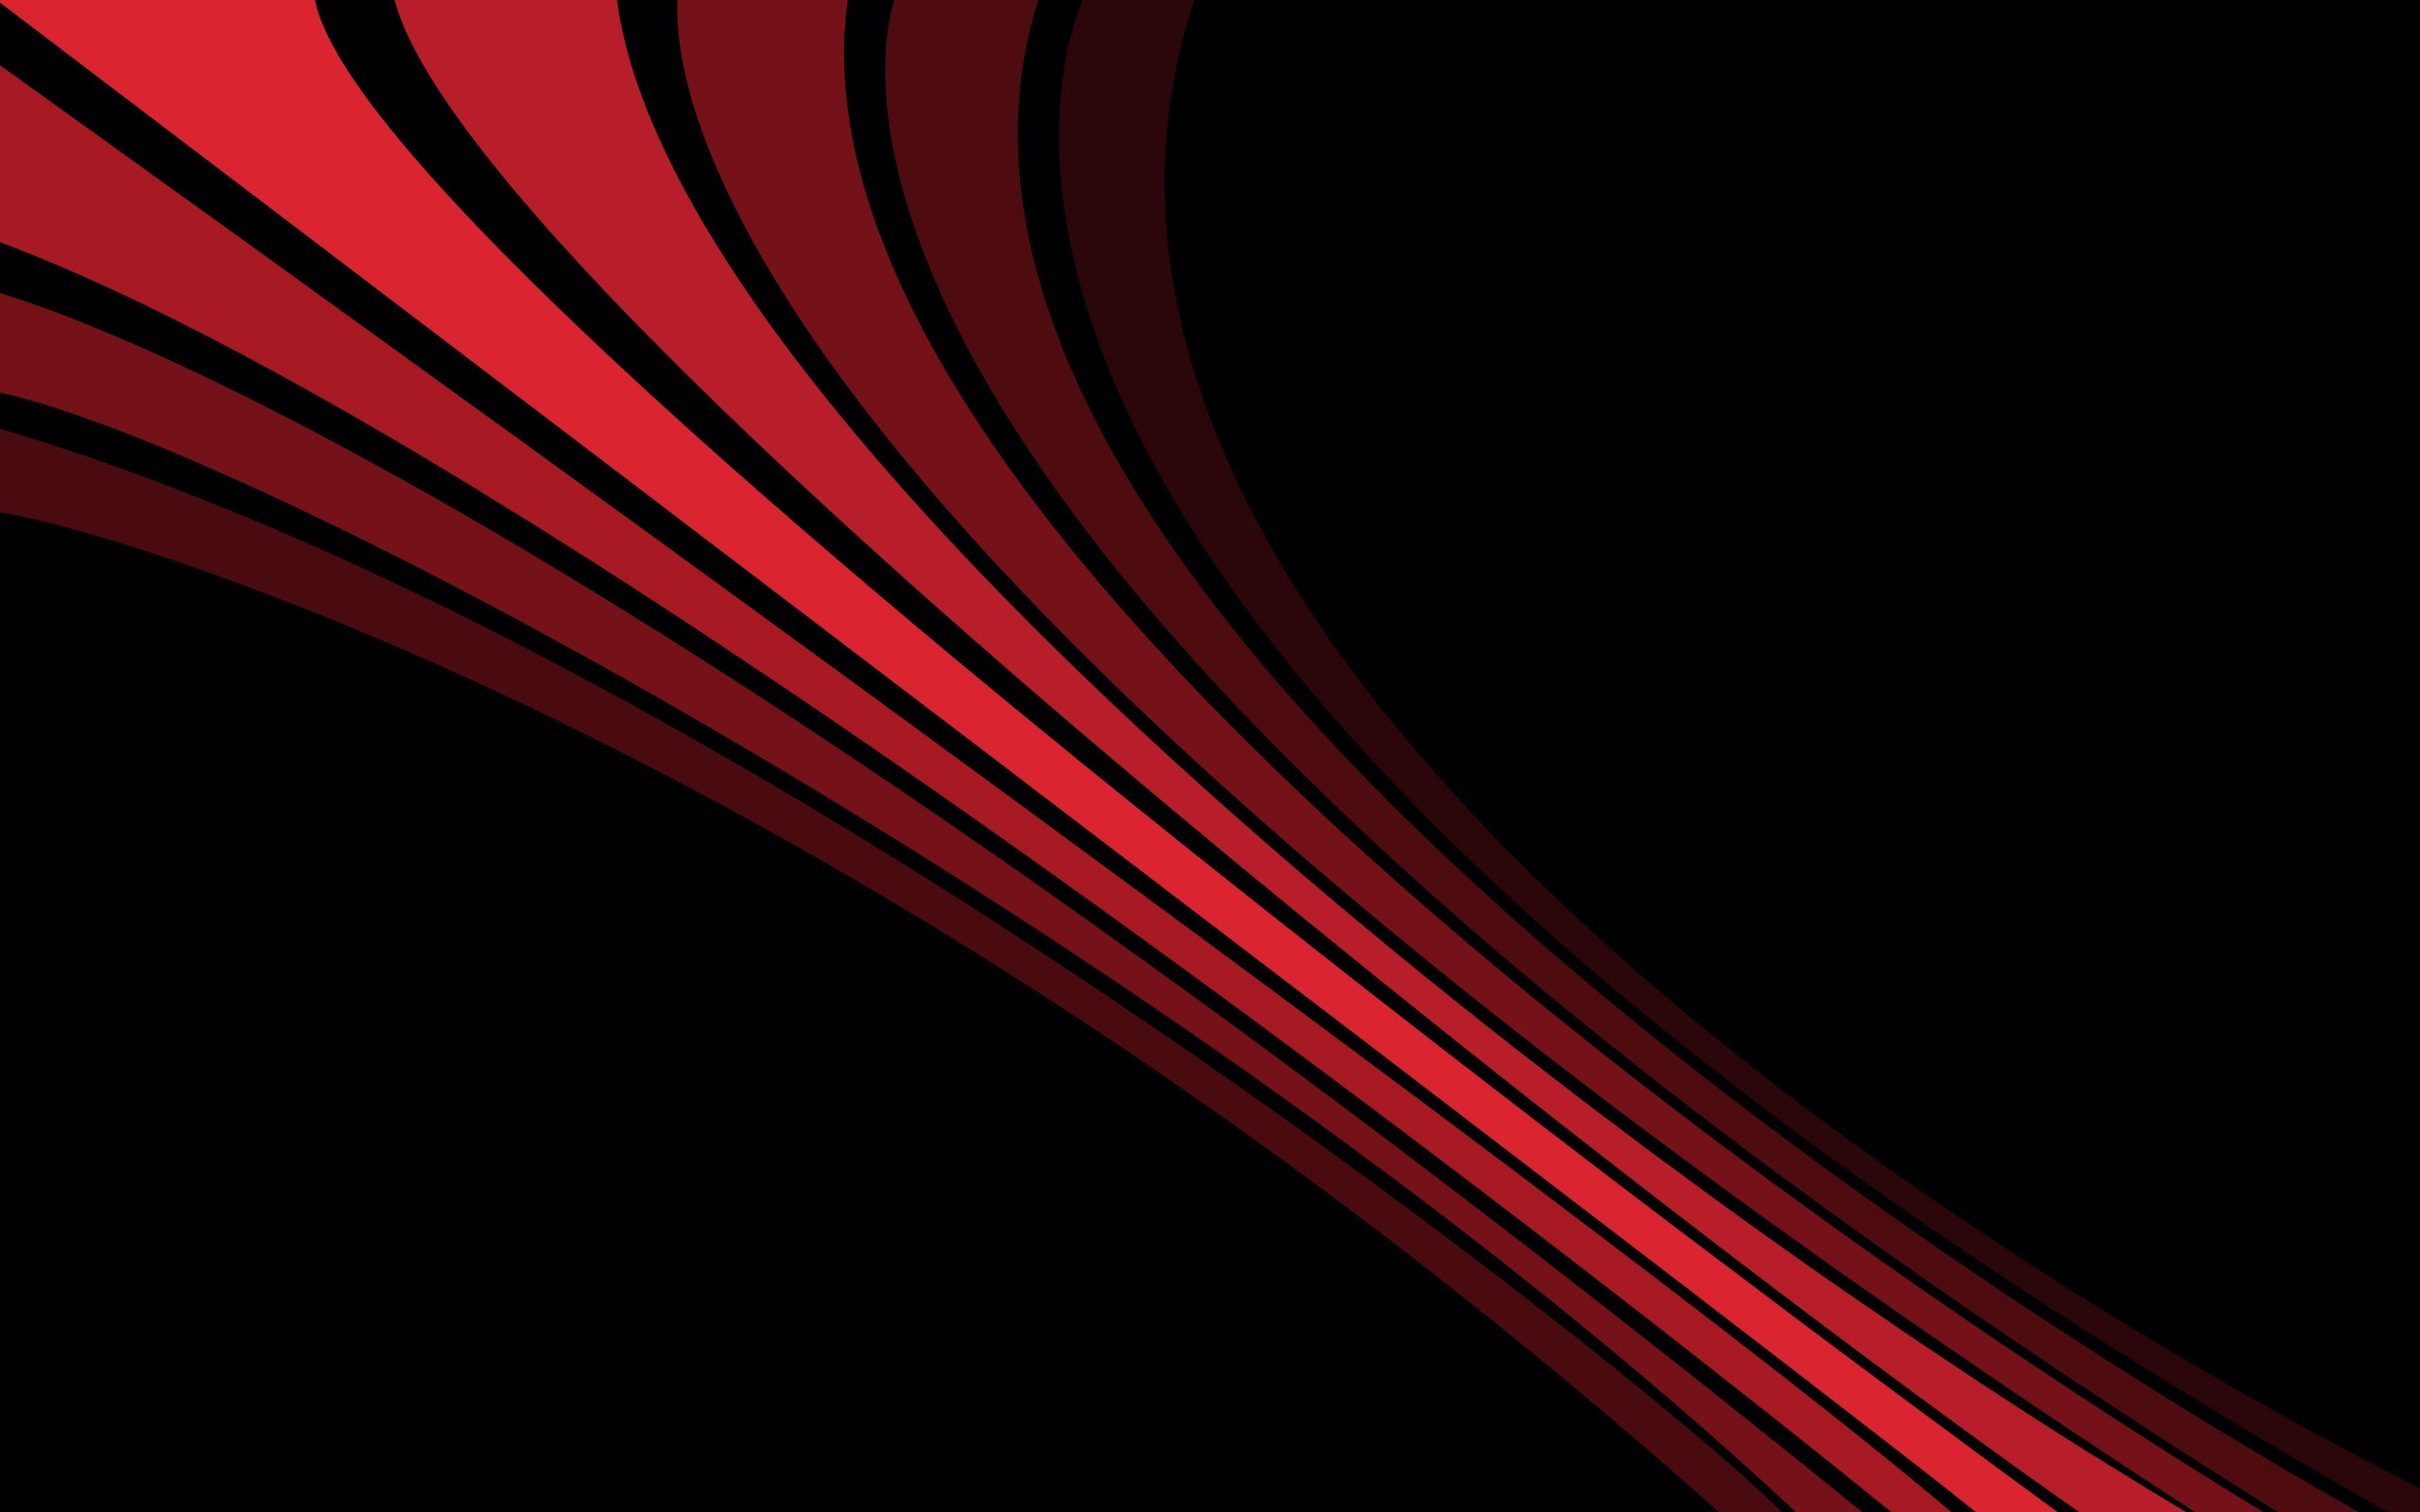 Red And Black Wallpaper ·① Download Free Cool Backgrounds